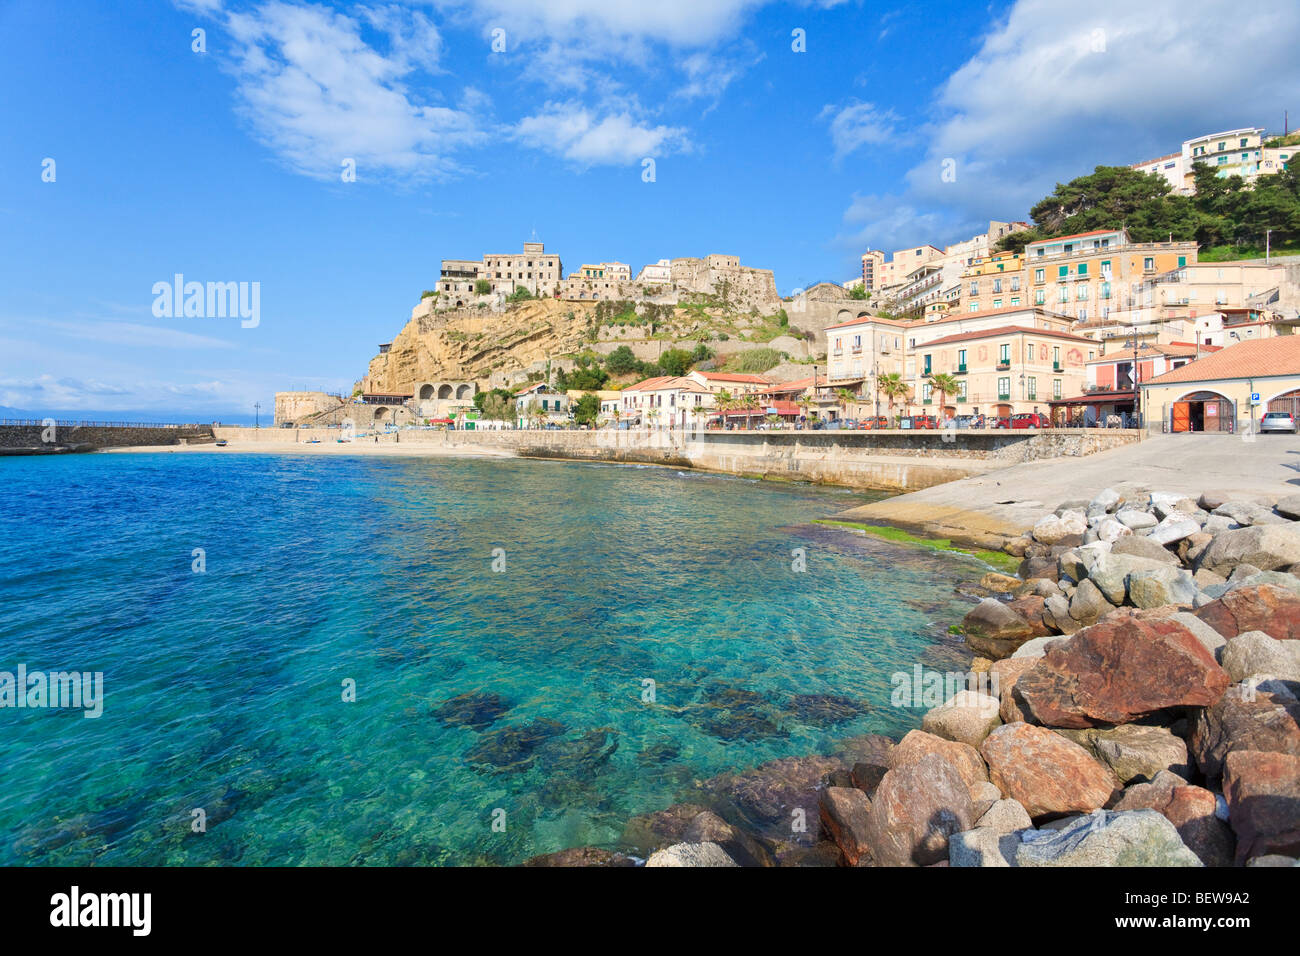 Beach of Pizzo, Castello Aragonese in the background, Calabria, Italy - Stock Image